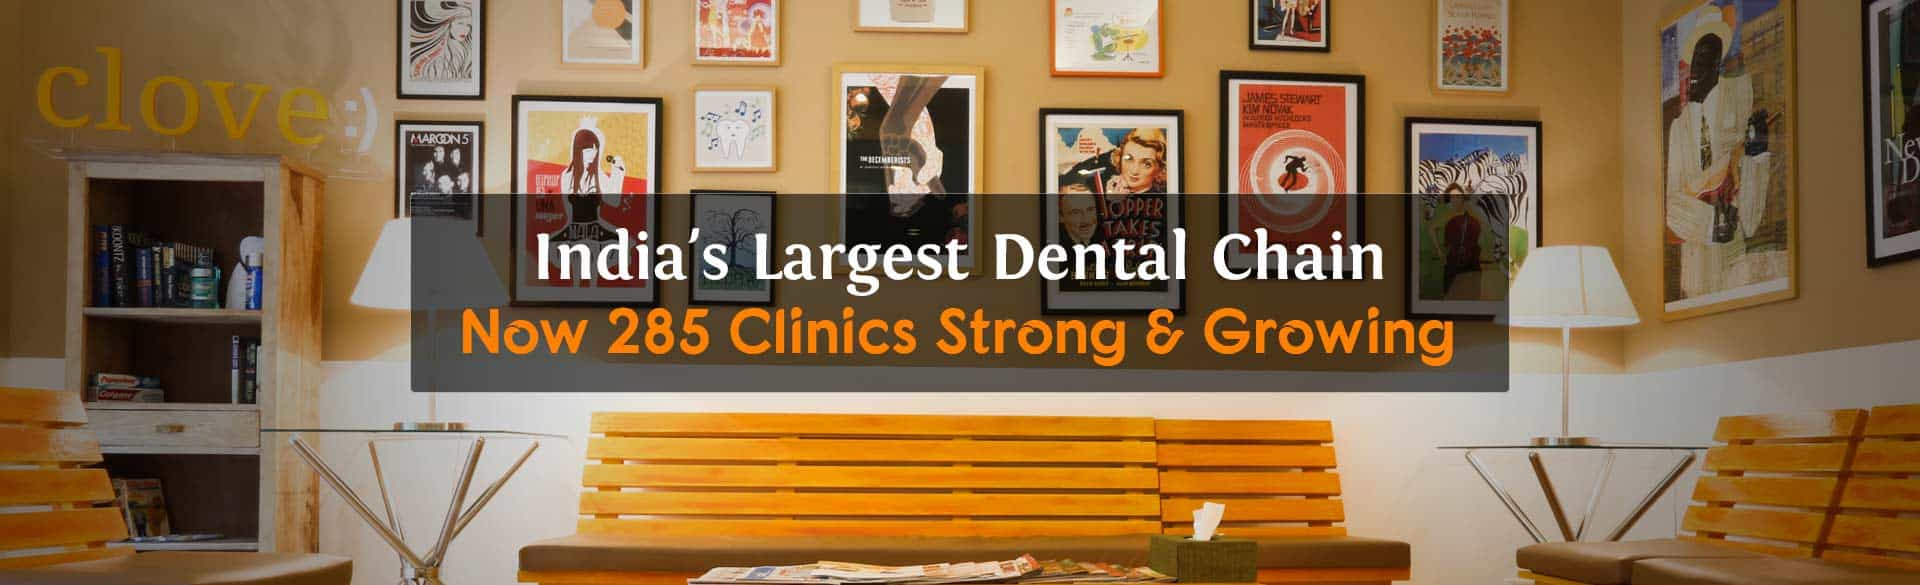 dental clinic near me - dentist near me